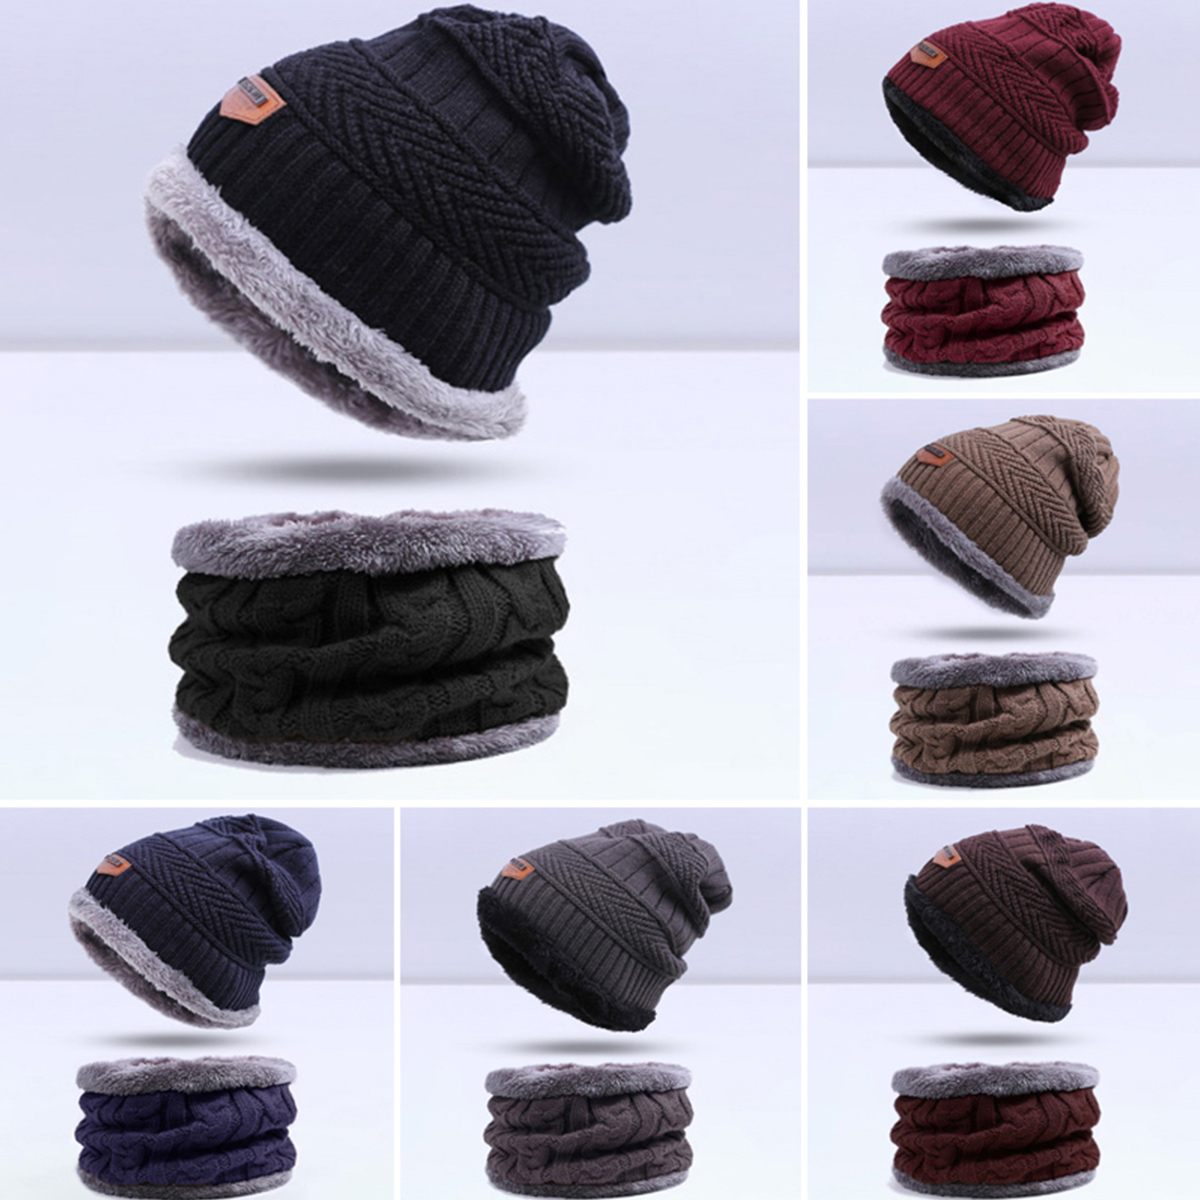 228844cd7d57 Άνδρες   s αξεσουάρ URDIAMOND Winter Hat Scarf Set Men Unisex 6 Colors  Knitting Hat Scarf Set Warm Wool Cap Scarves Winter Outdoor Accessories